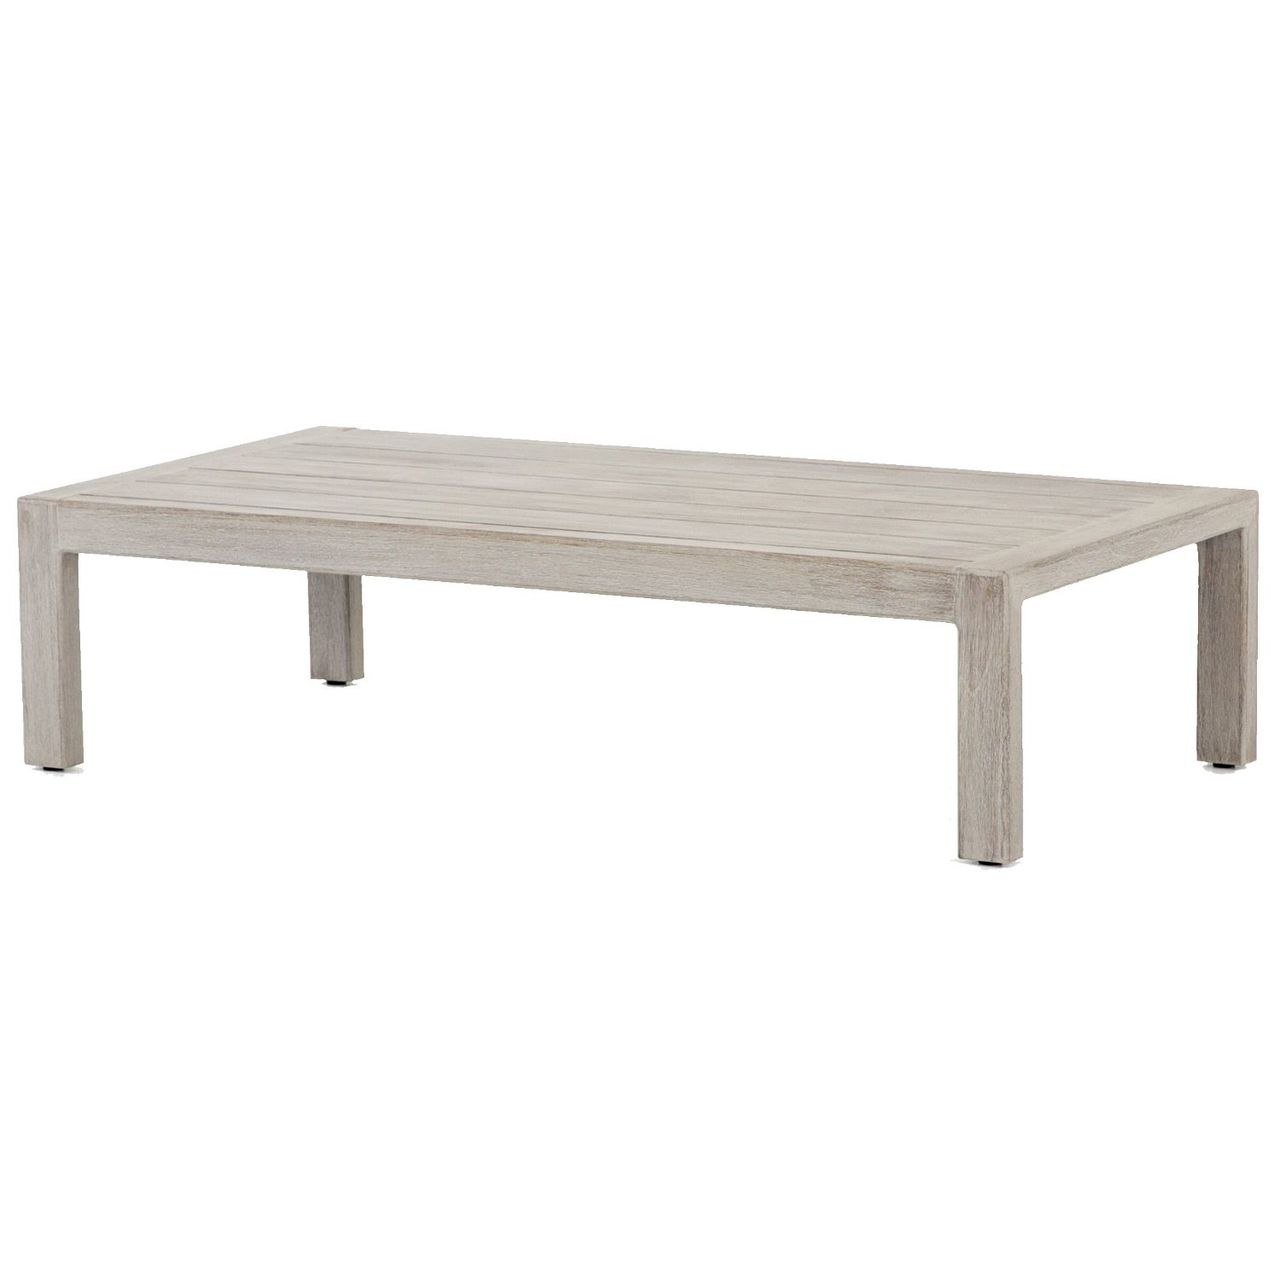 Picture of: Sonoma Grey Teak Outdoor Coffee Table 47 Zin Home Fourhands